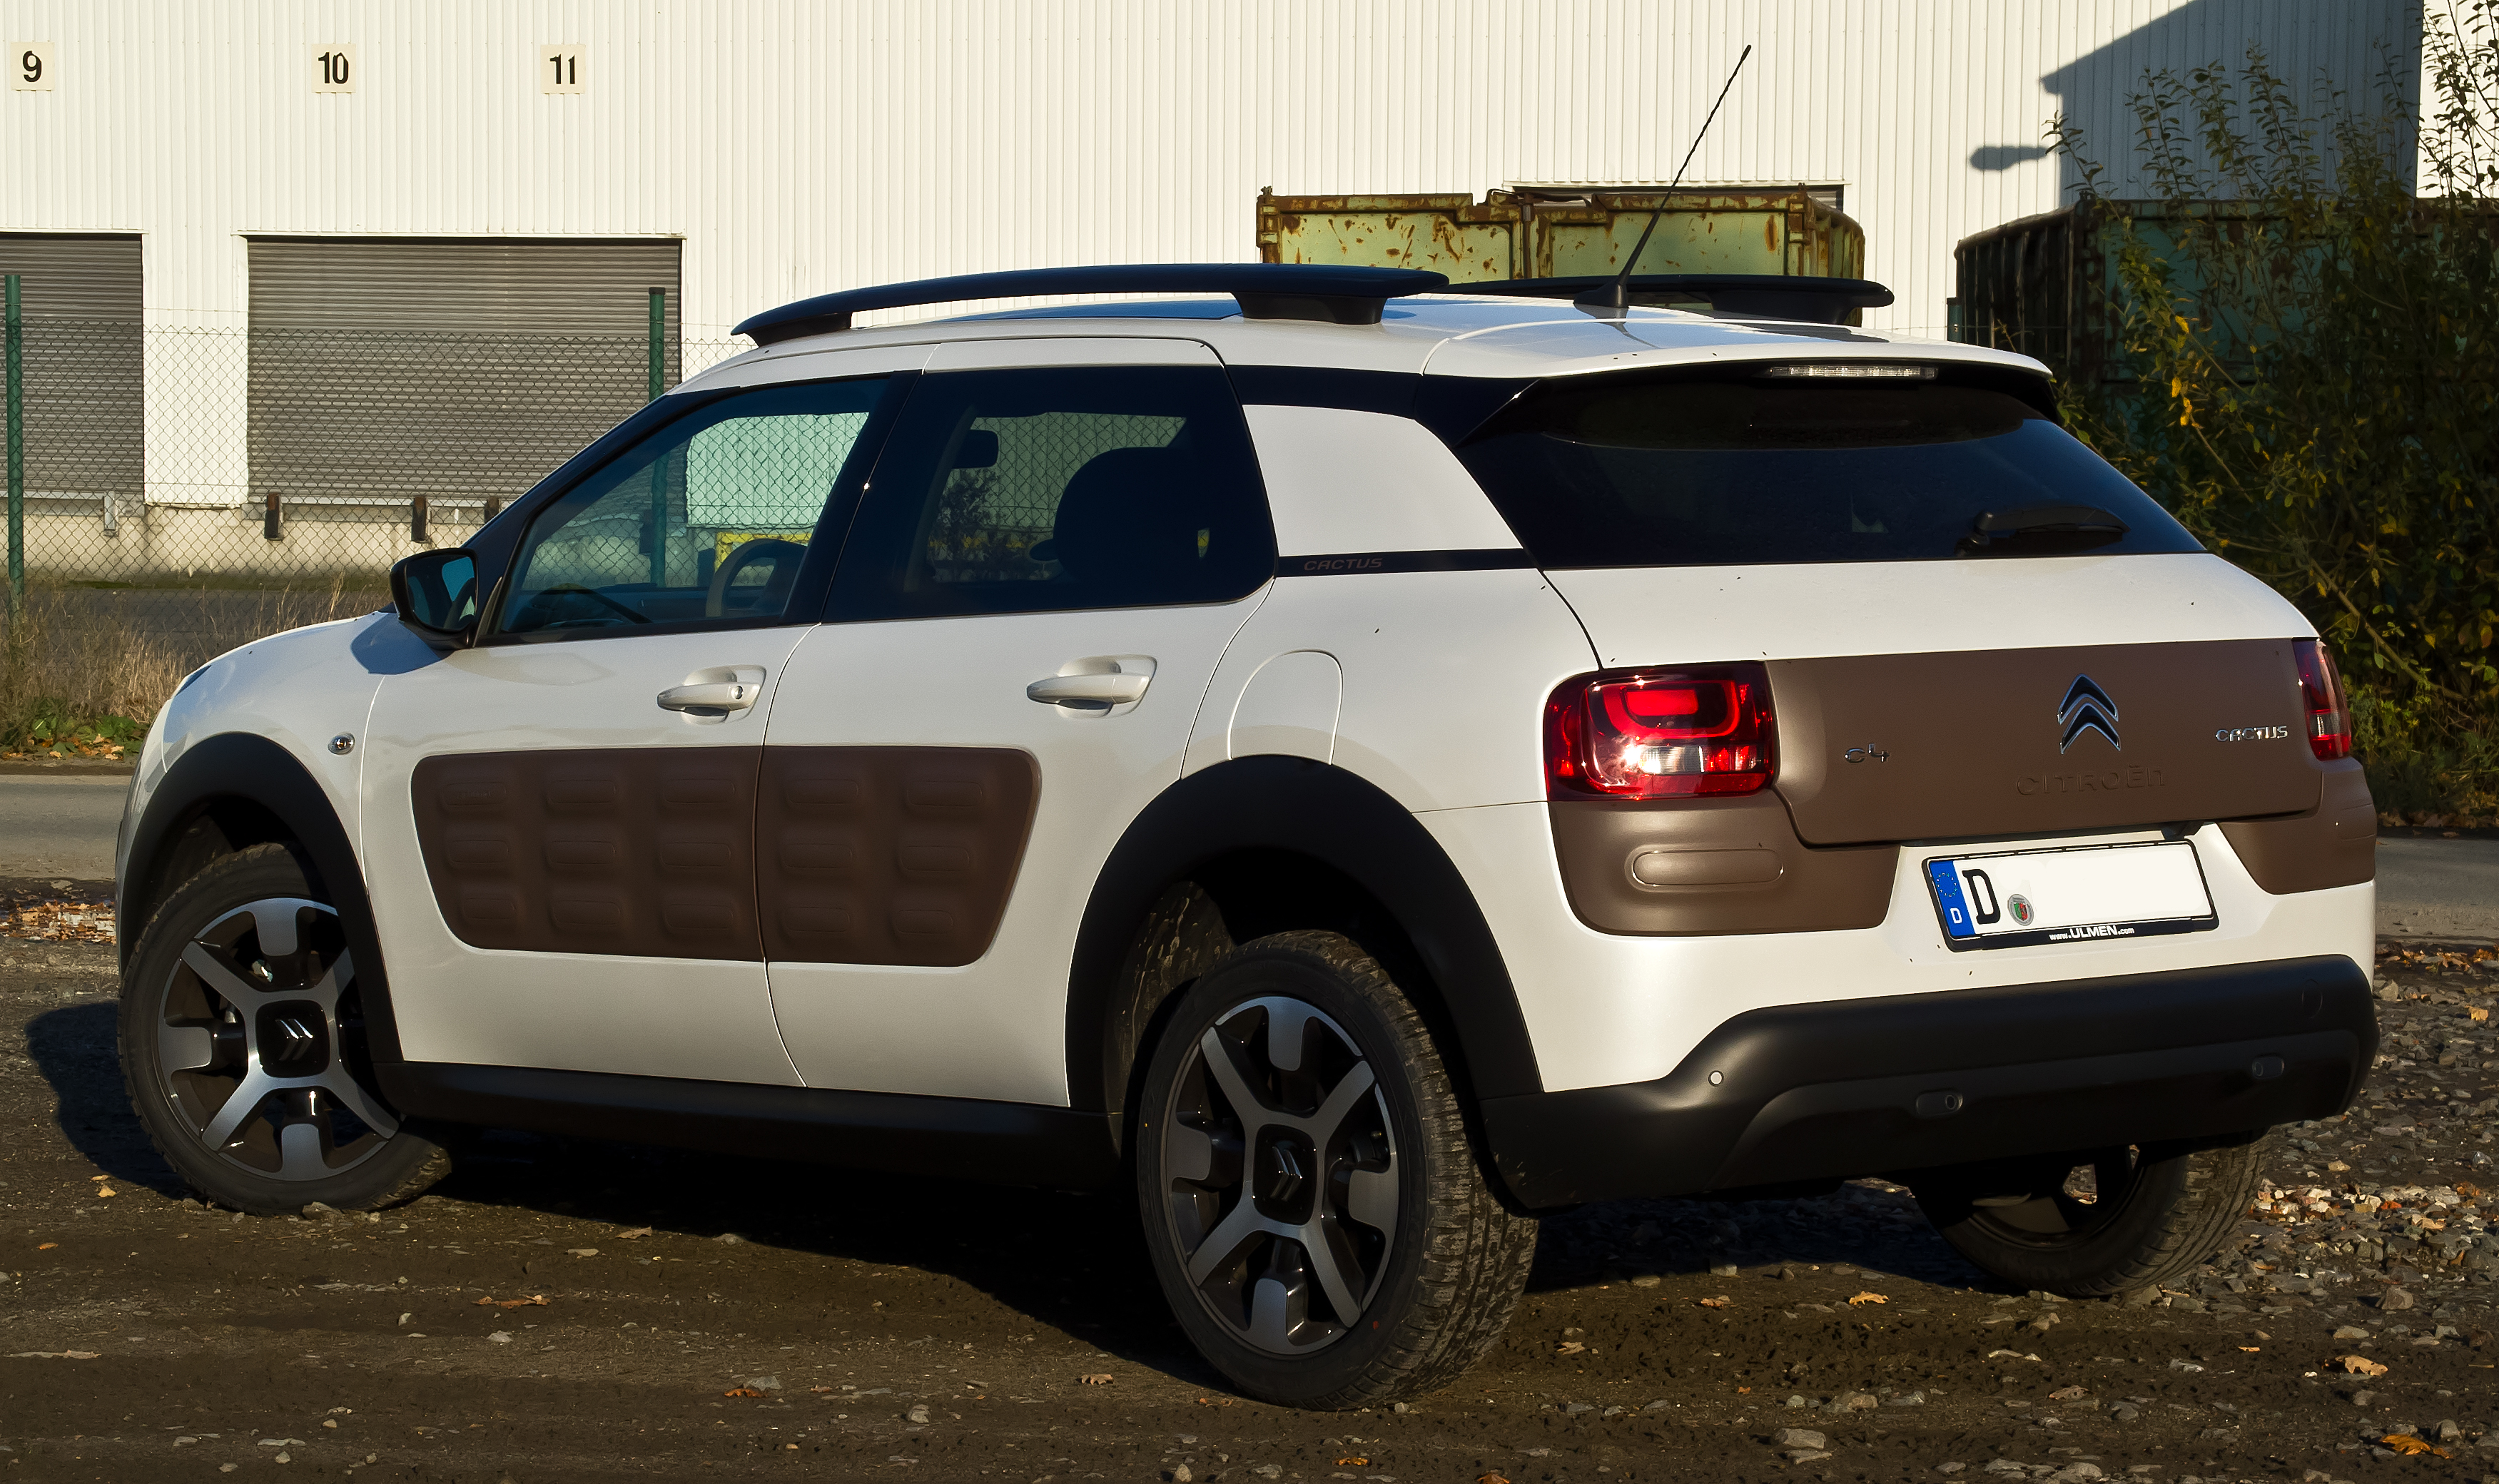 Citroen C4 Cactus Wiki >> Datei:Citroën C4 Cactus BlueHDi 100 Shine Edition – Heckansicht (1), 2. November 2014, Münster ...